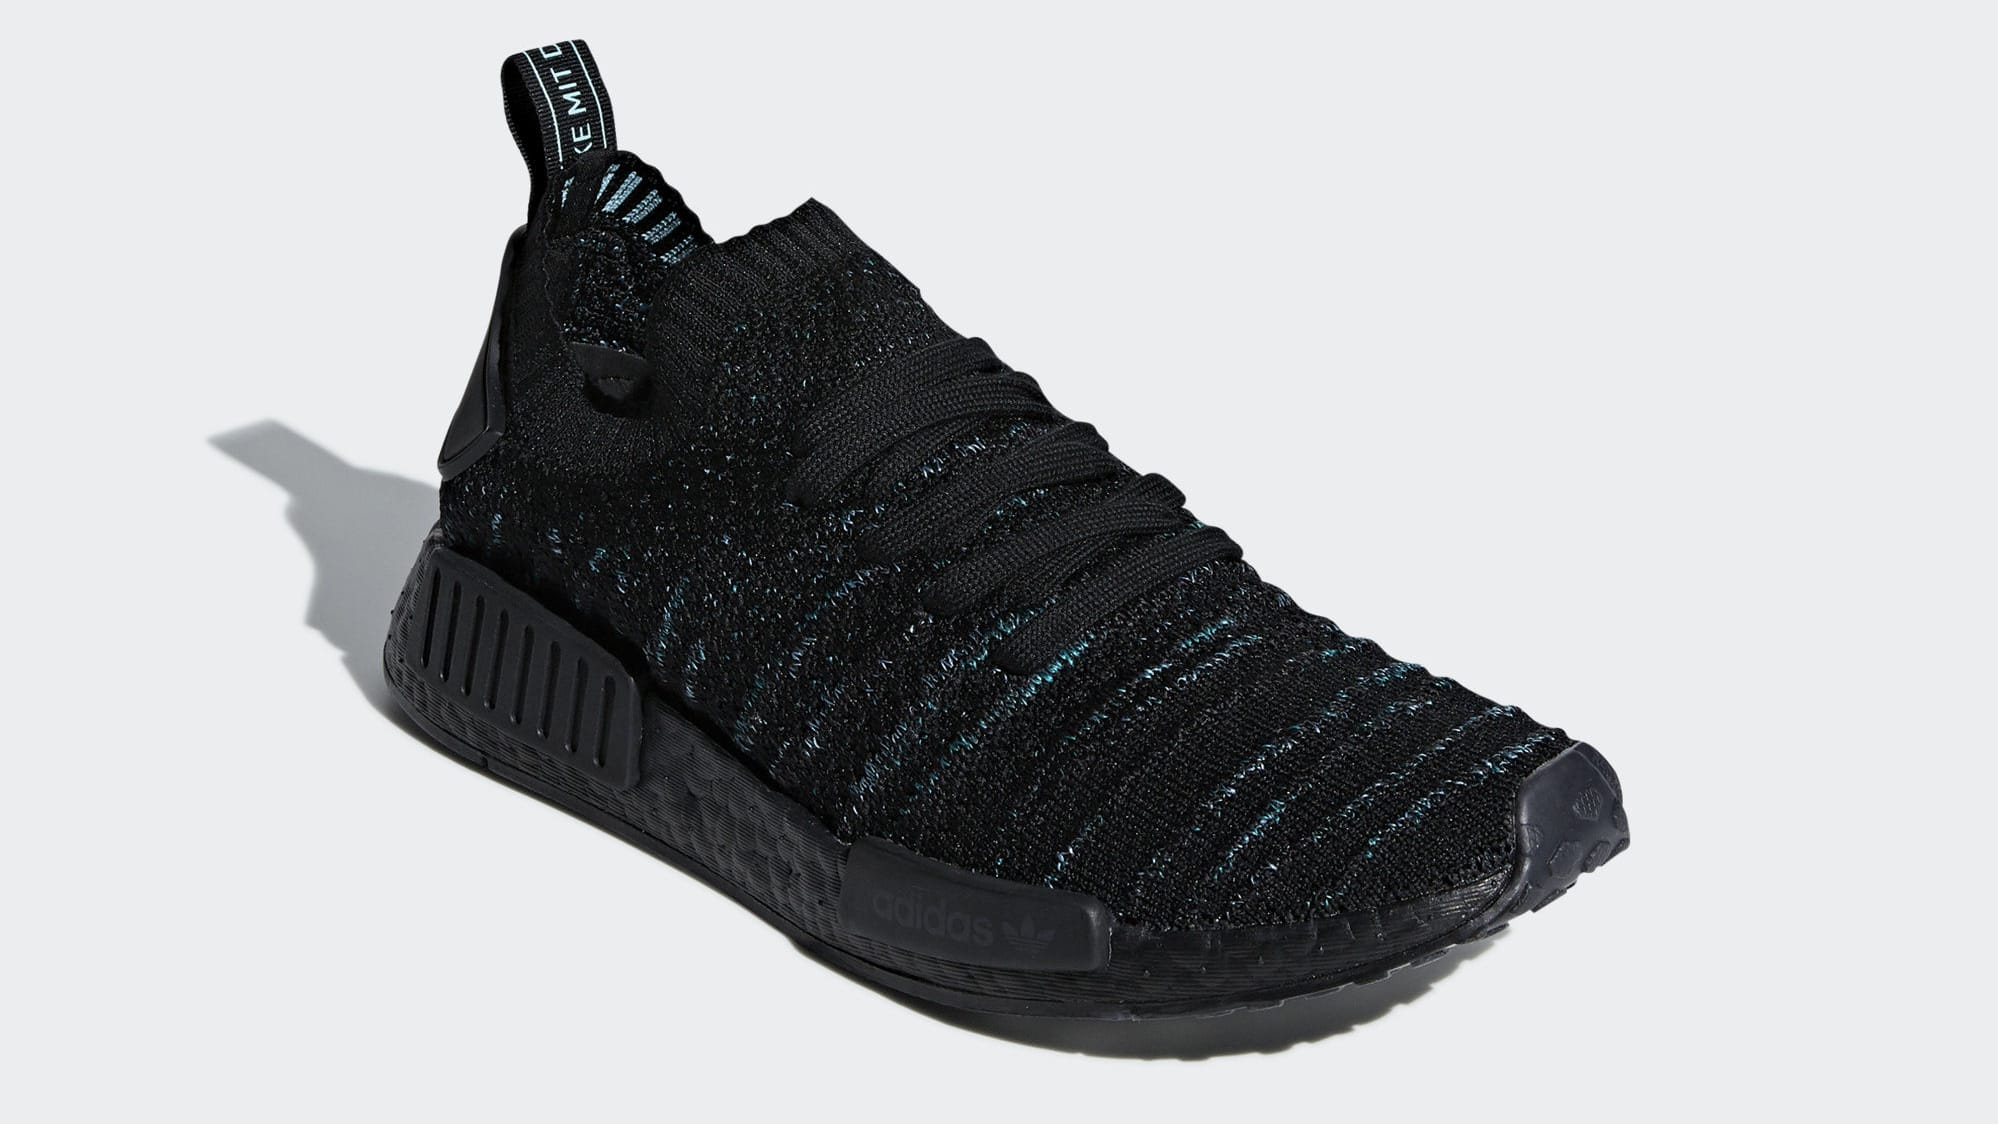 parley-adidas-nmd-r1-core-black-blue-spirit-aq0943-front